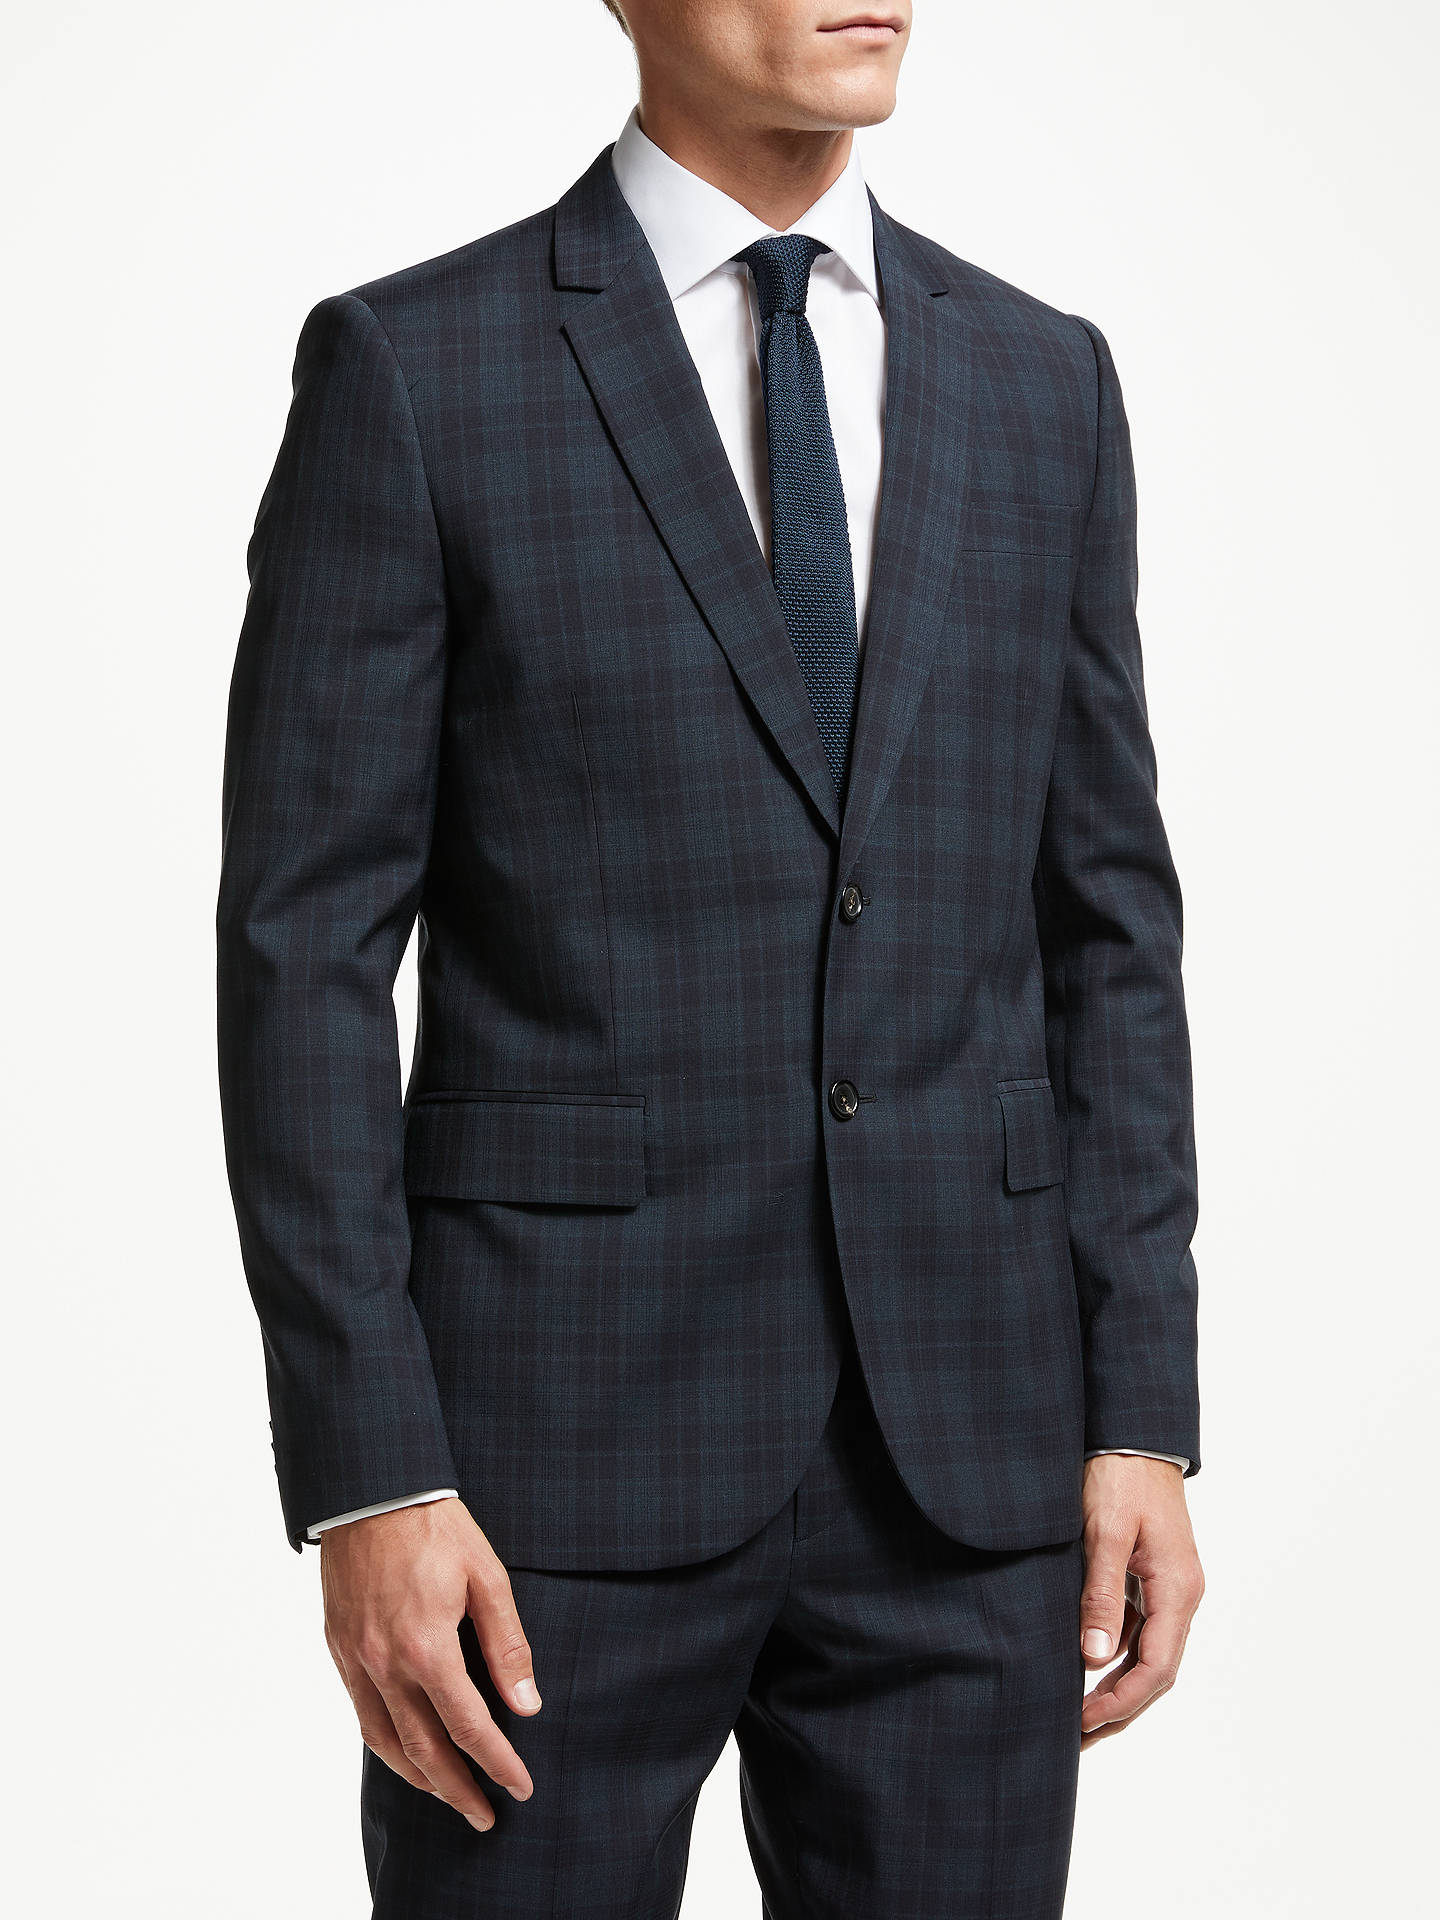 fdd79292cab Buy PS Paul Smith Wool Check Tailored Fit Suit Jacket